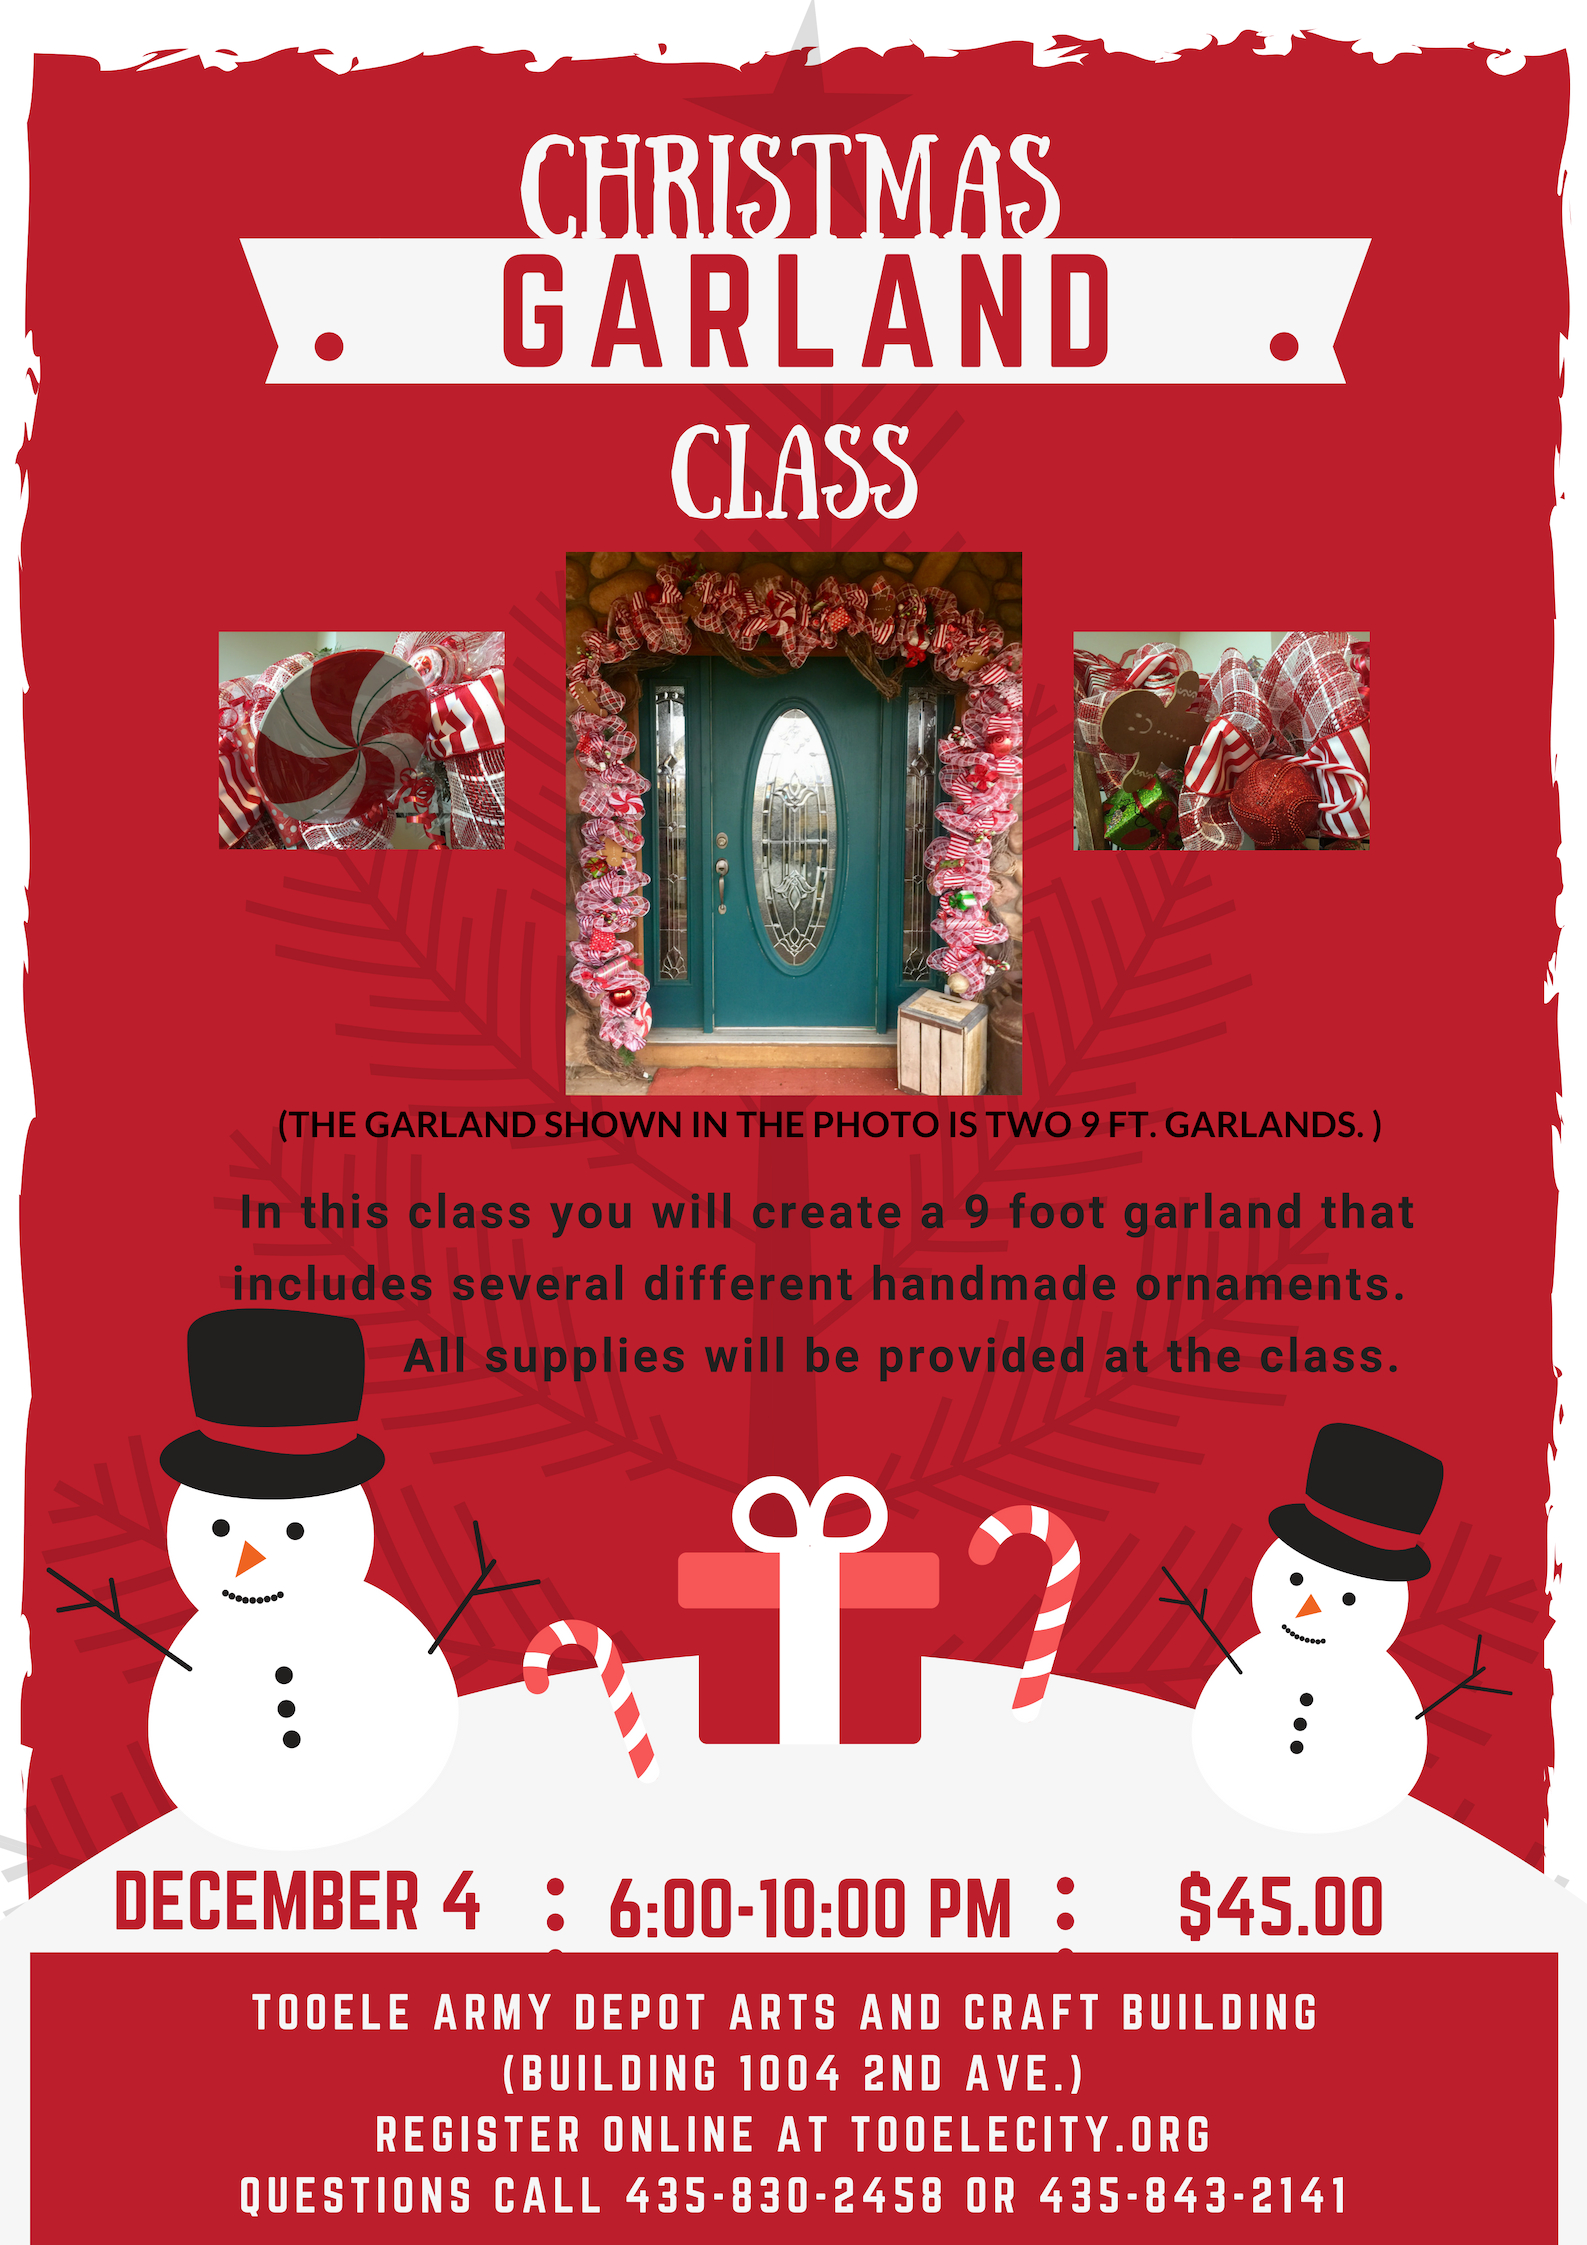 Christmas Garland Class - December 4, 2018